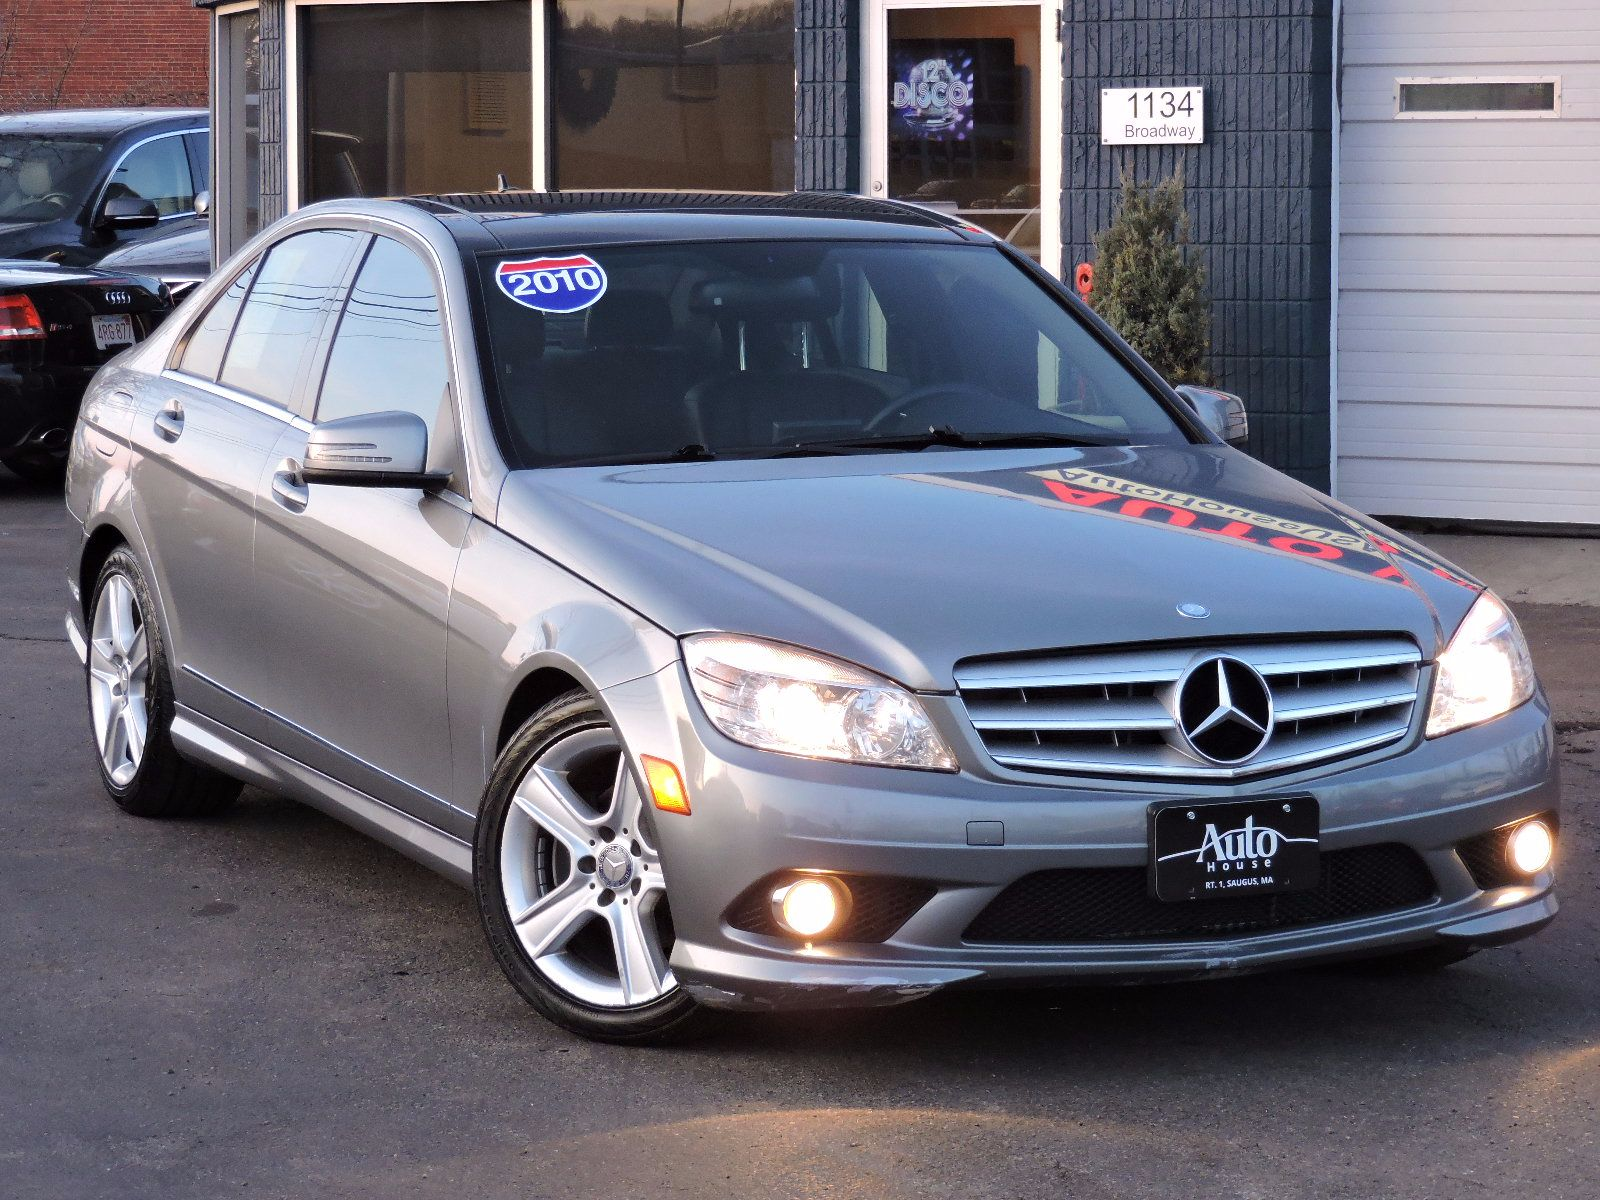 used 2010 mercedes benz c class c300 sport at auto house usa saugus. Black Bedroom Furniture Sets. Home Design Ideas